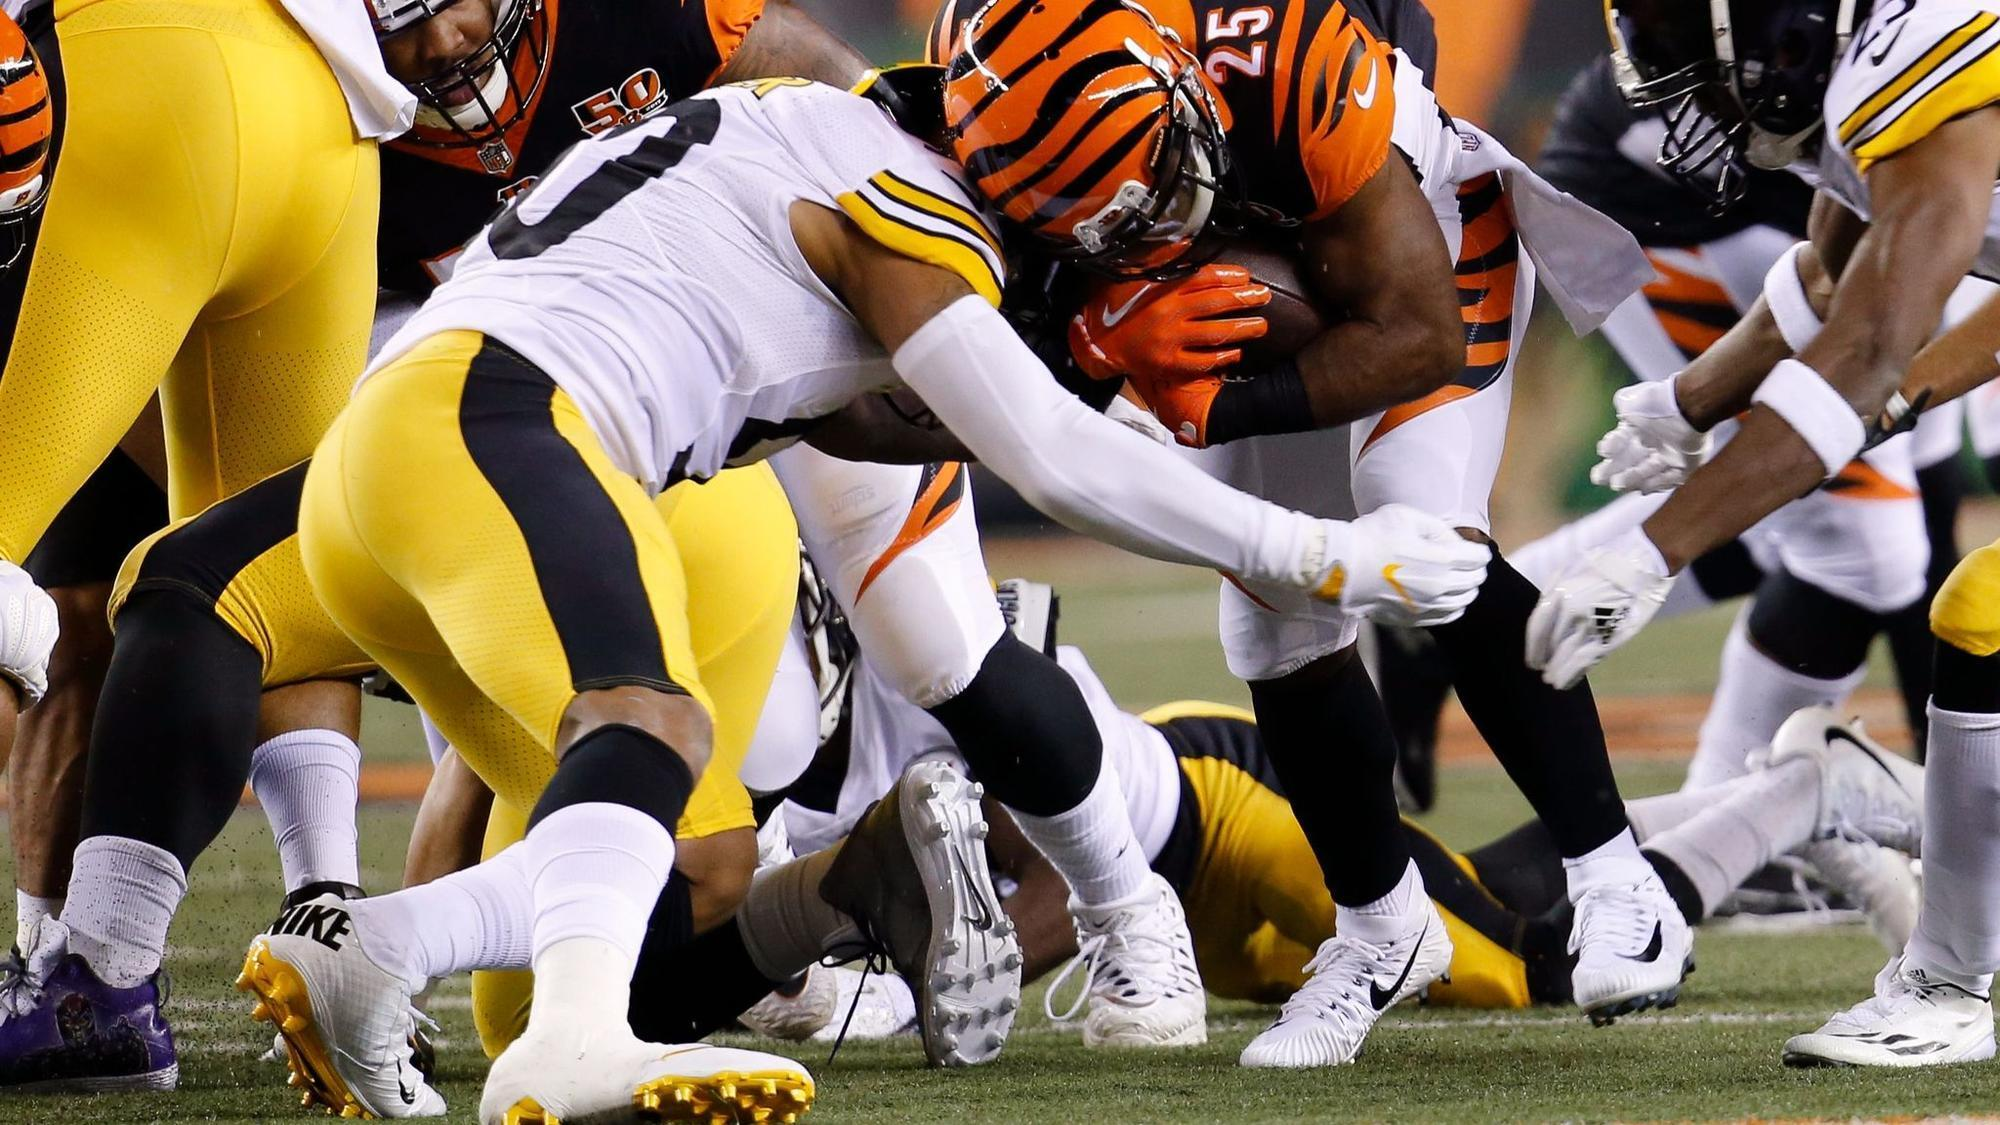 Ryan Shazier Injury >> Ryan Shazier injury appears more worrisome than most - Orlando Sentinel